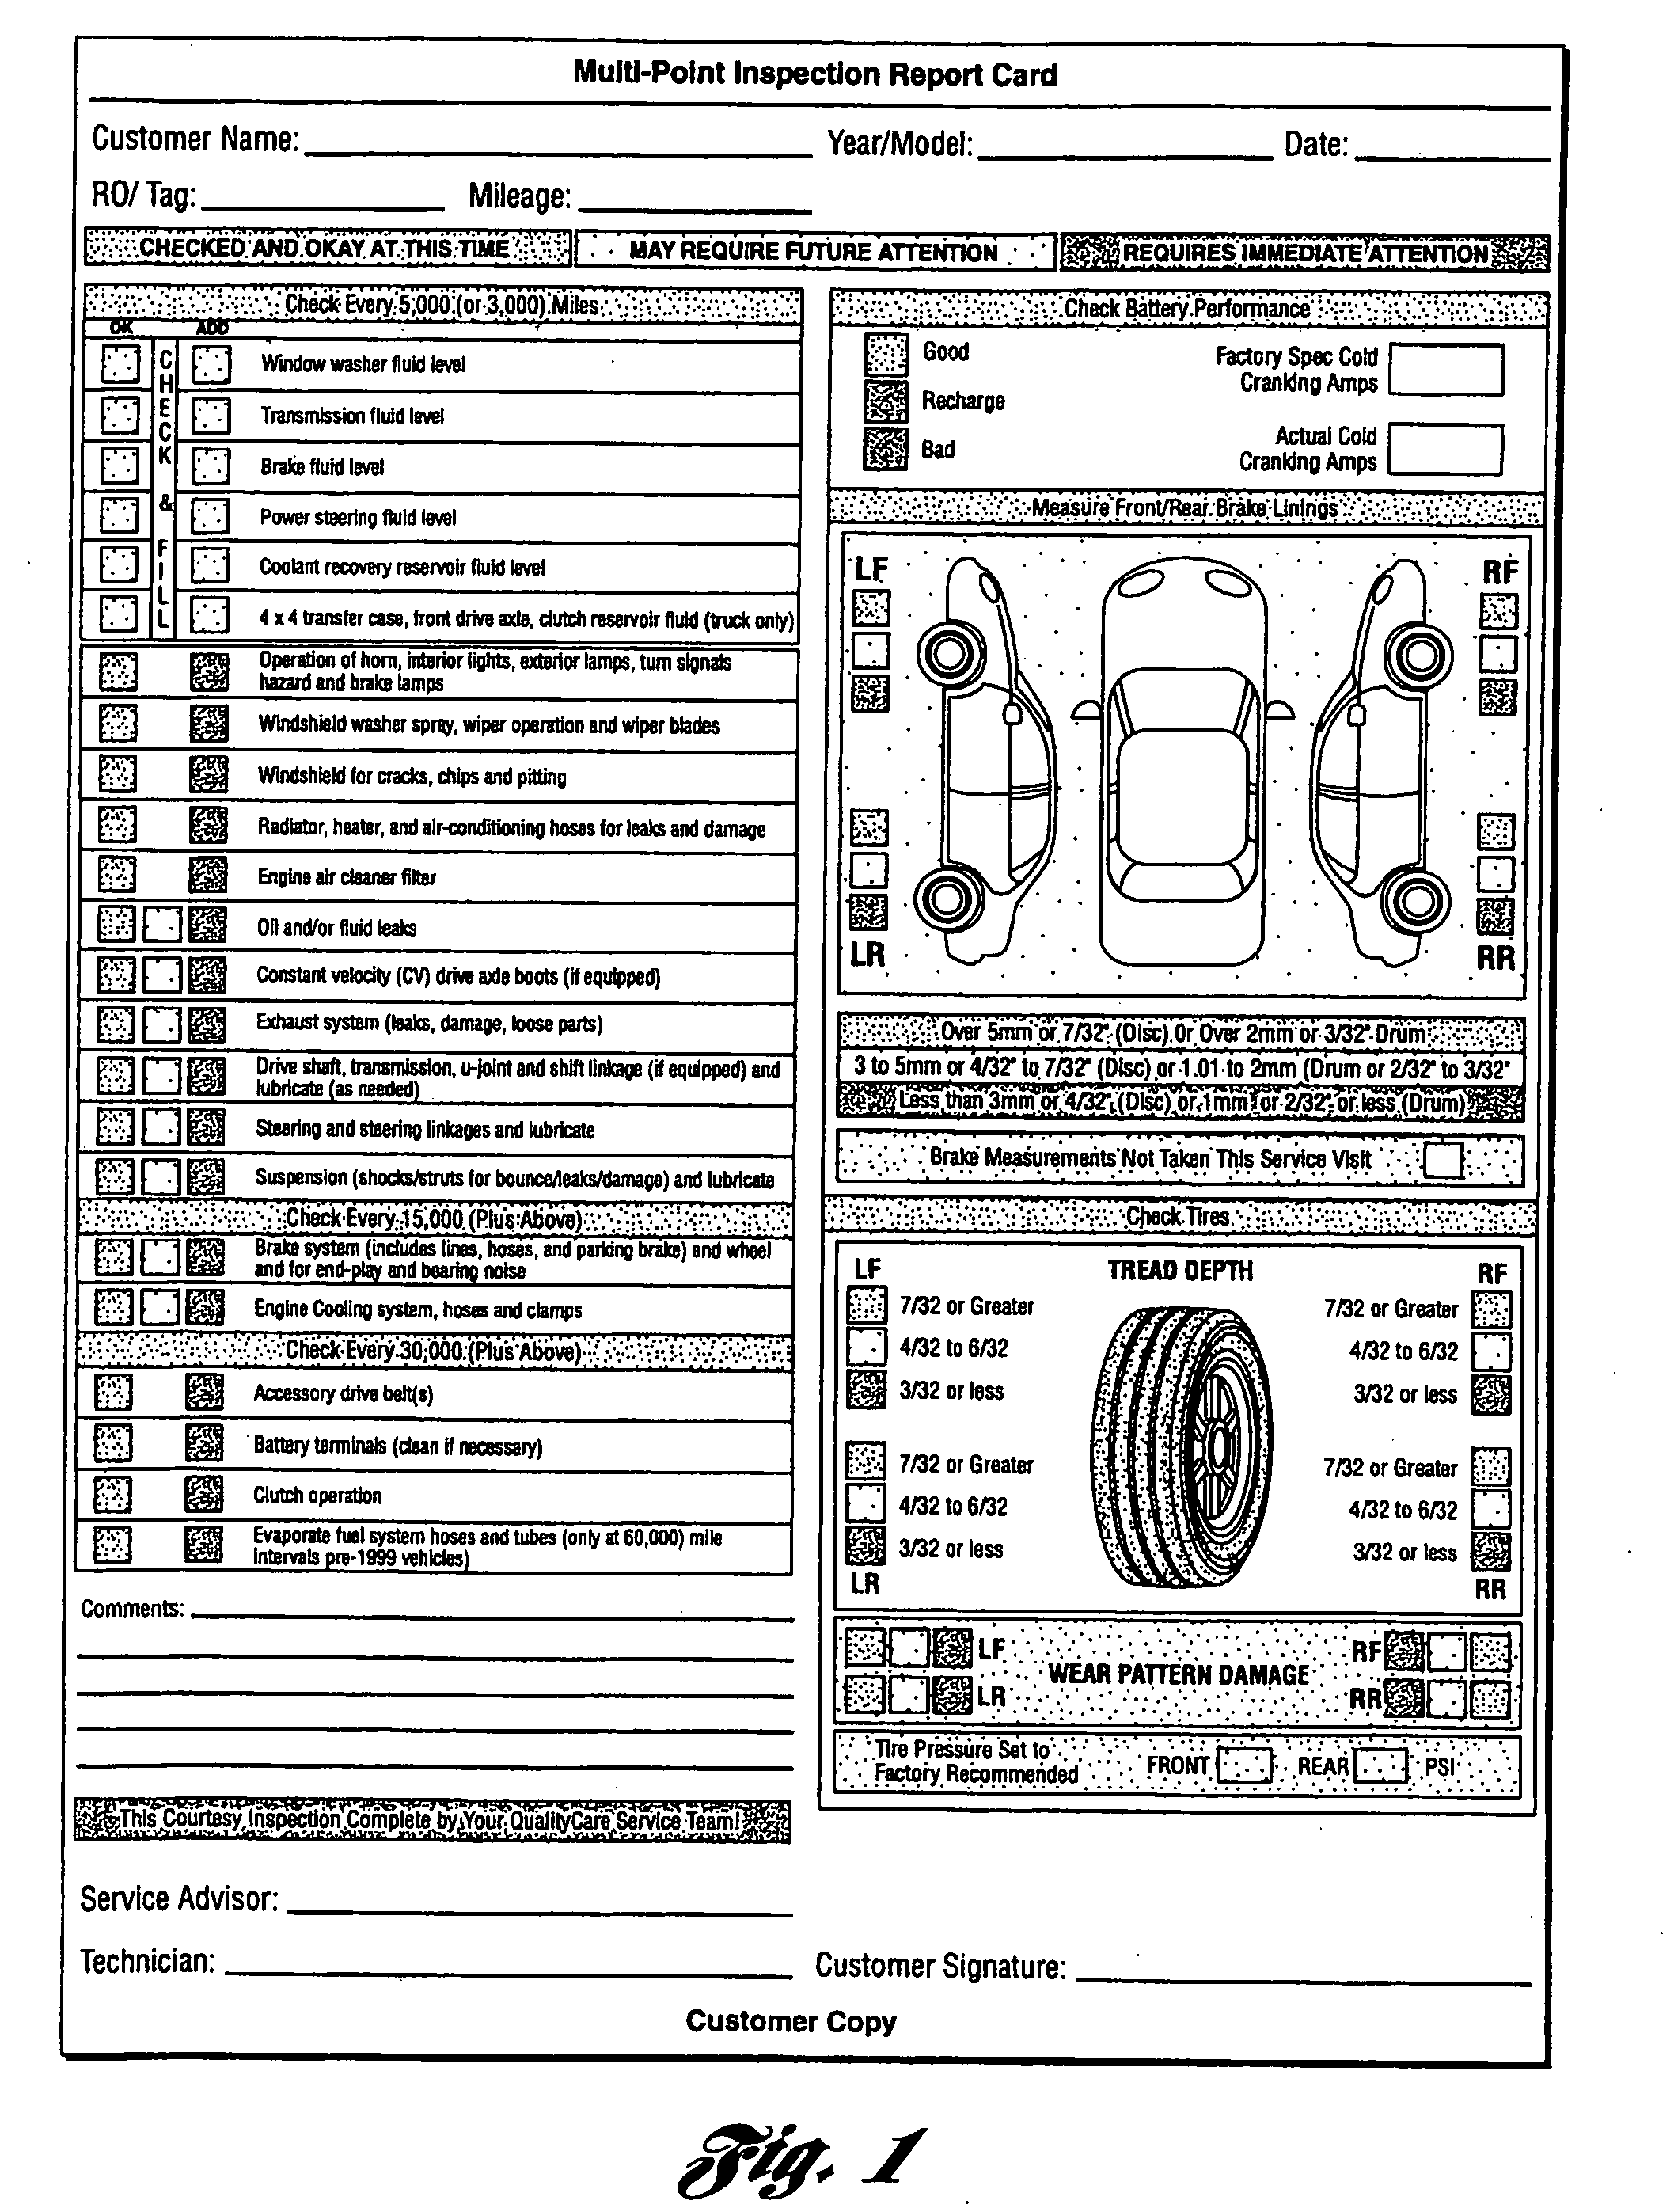 Displaying 19> Images For - Multi Point Vehicle Inspection Sheet...